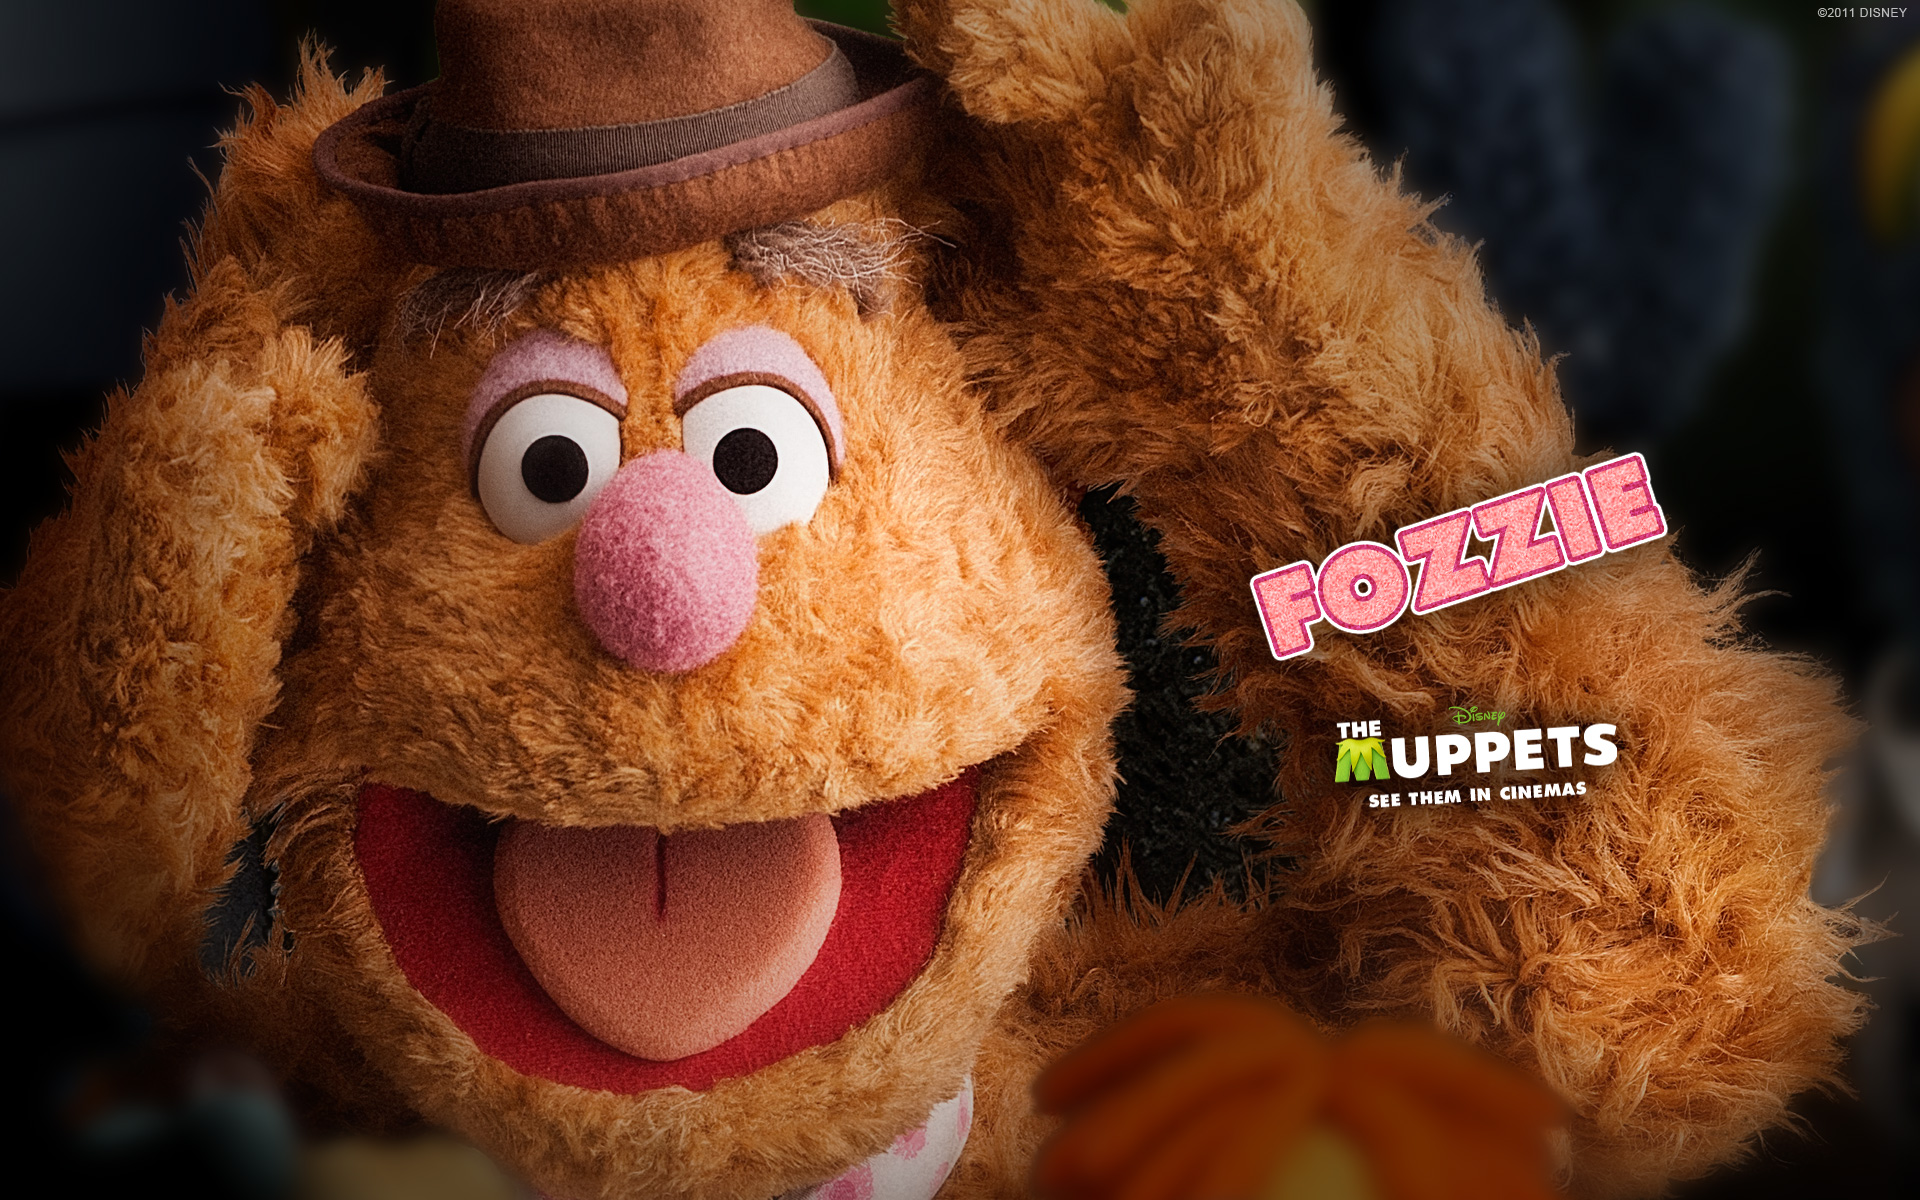 Free download Fozzie Bear The Muppets Characters Disney